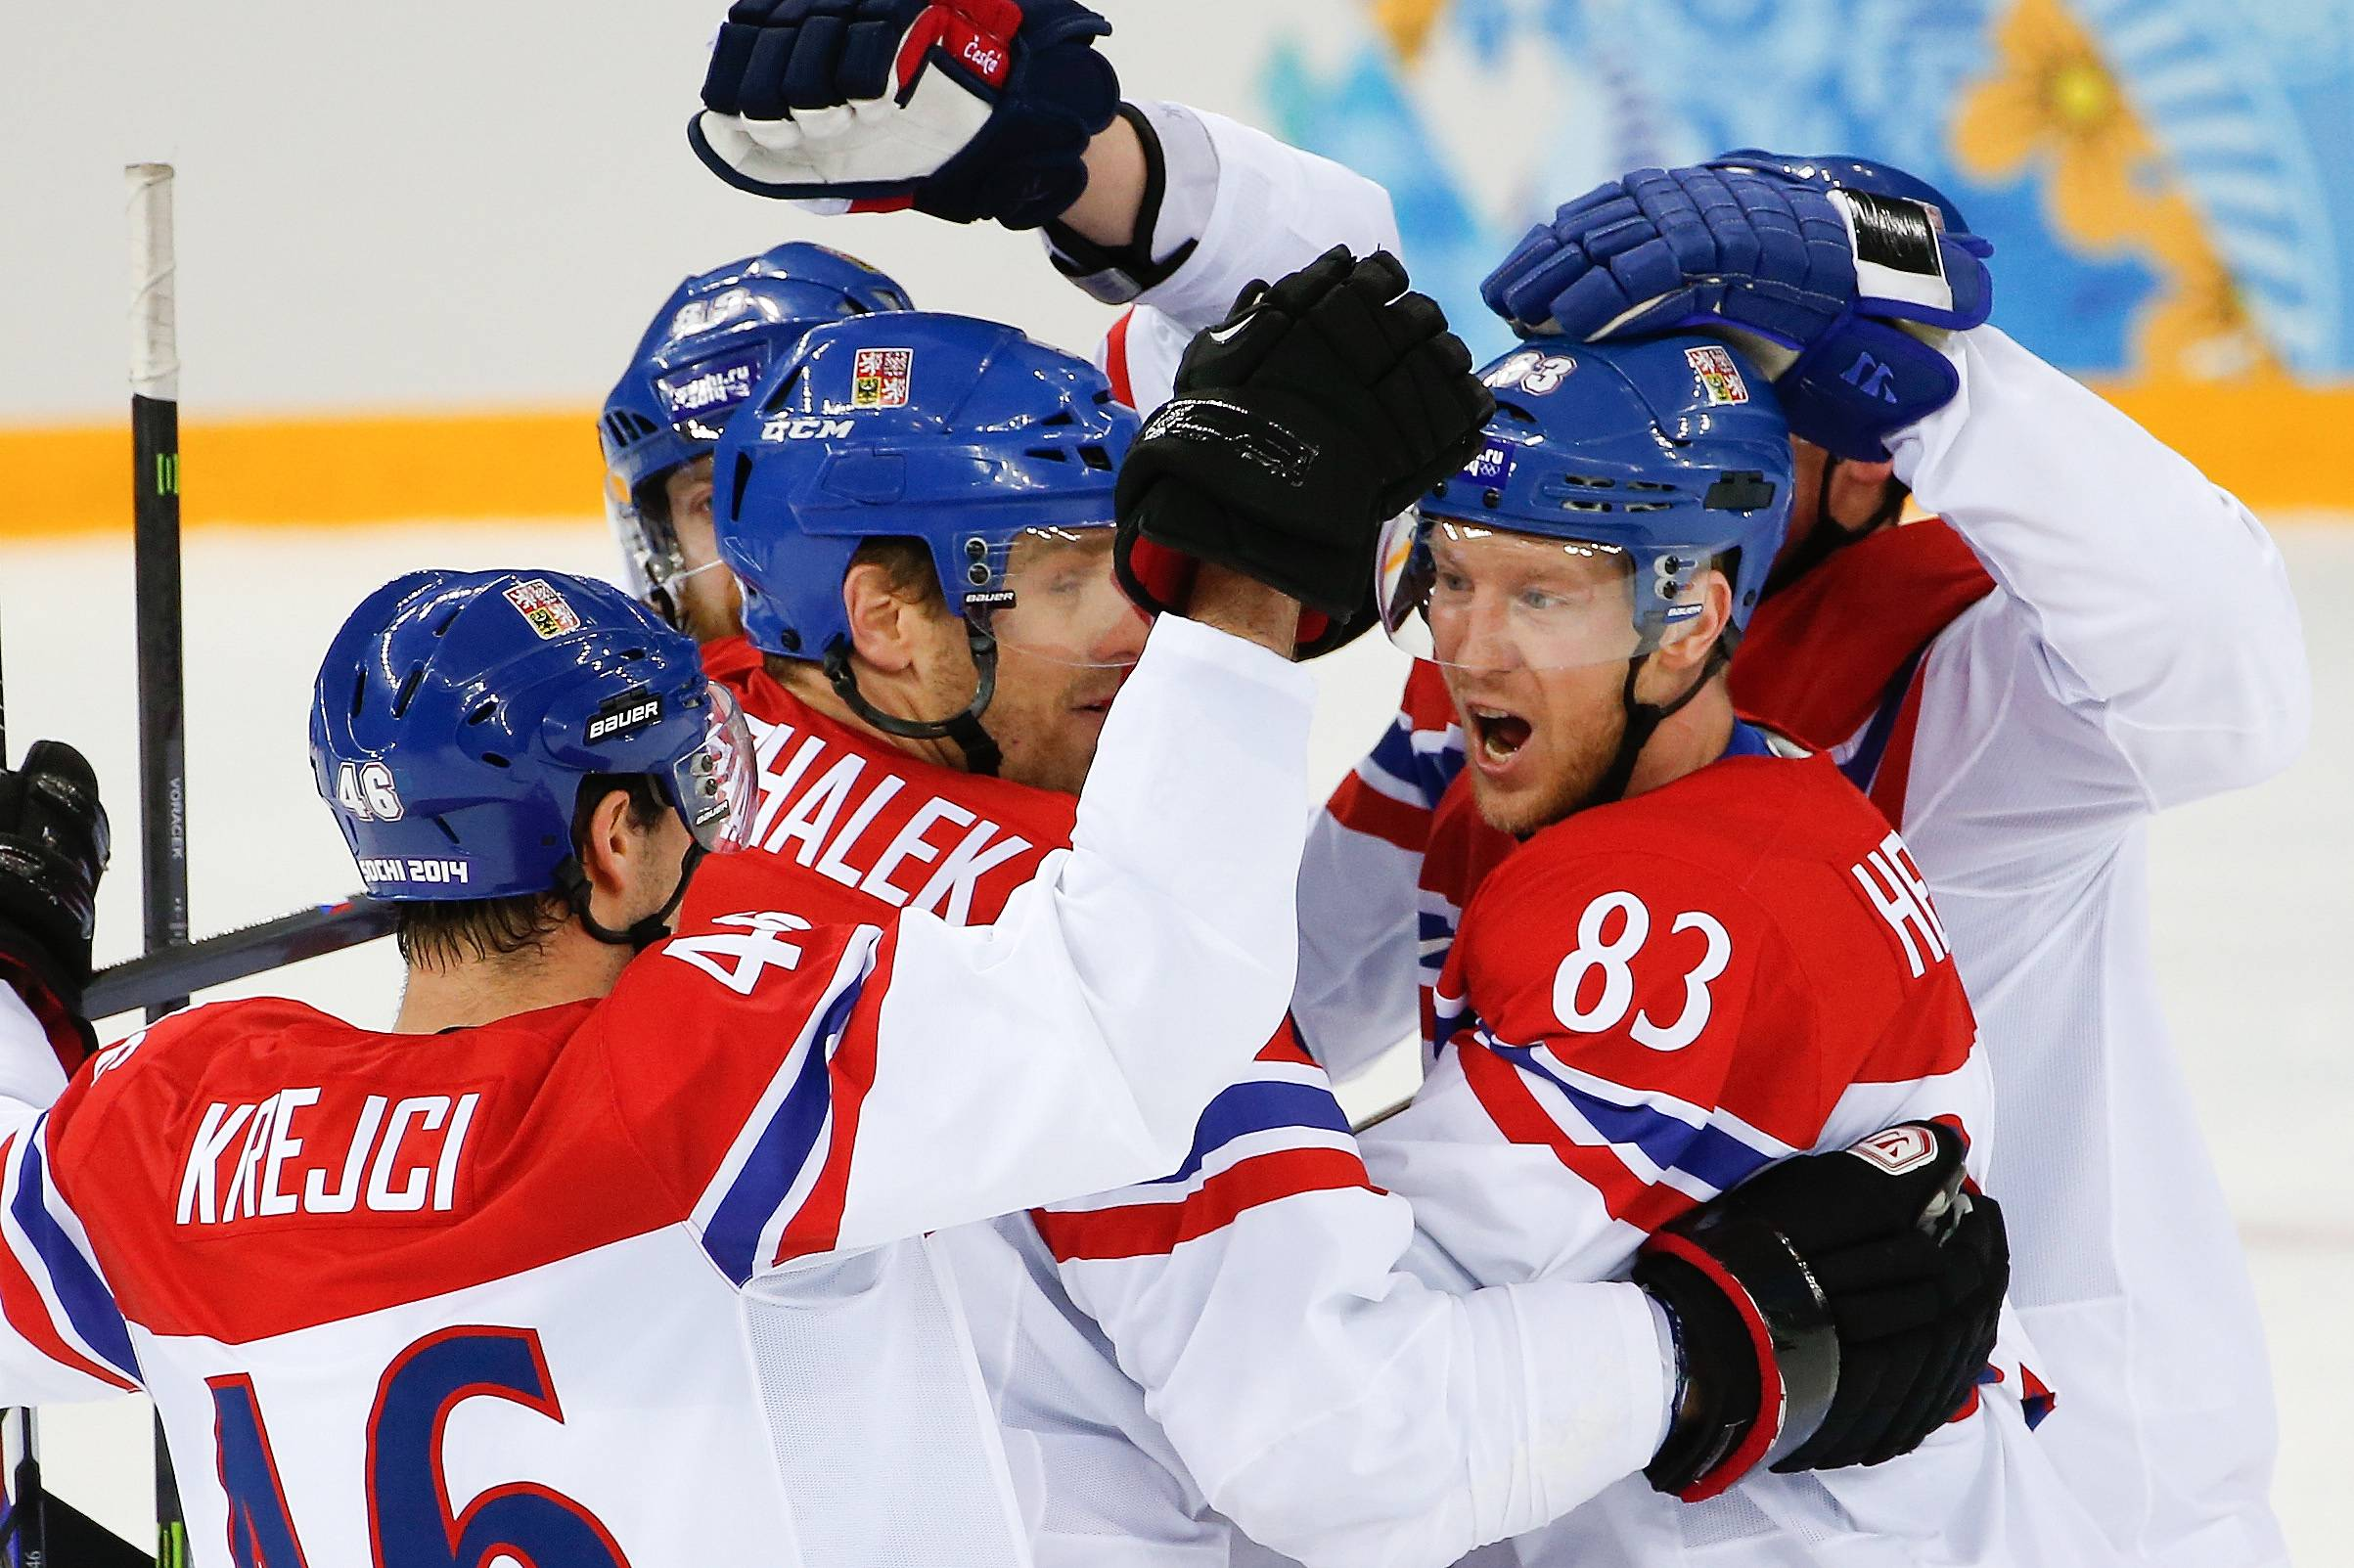 Czech Republic forward Ales Hemsky (83) celebrates his goal against Slovakia with his teammates during the first period.